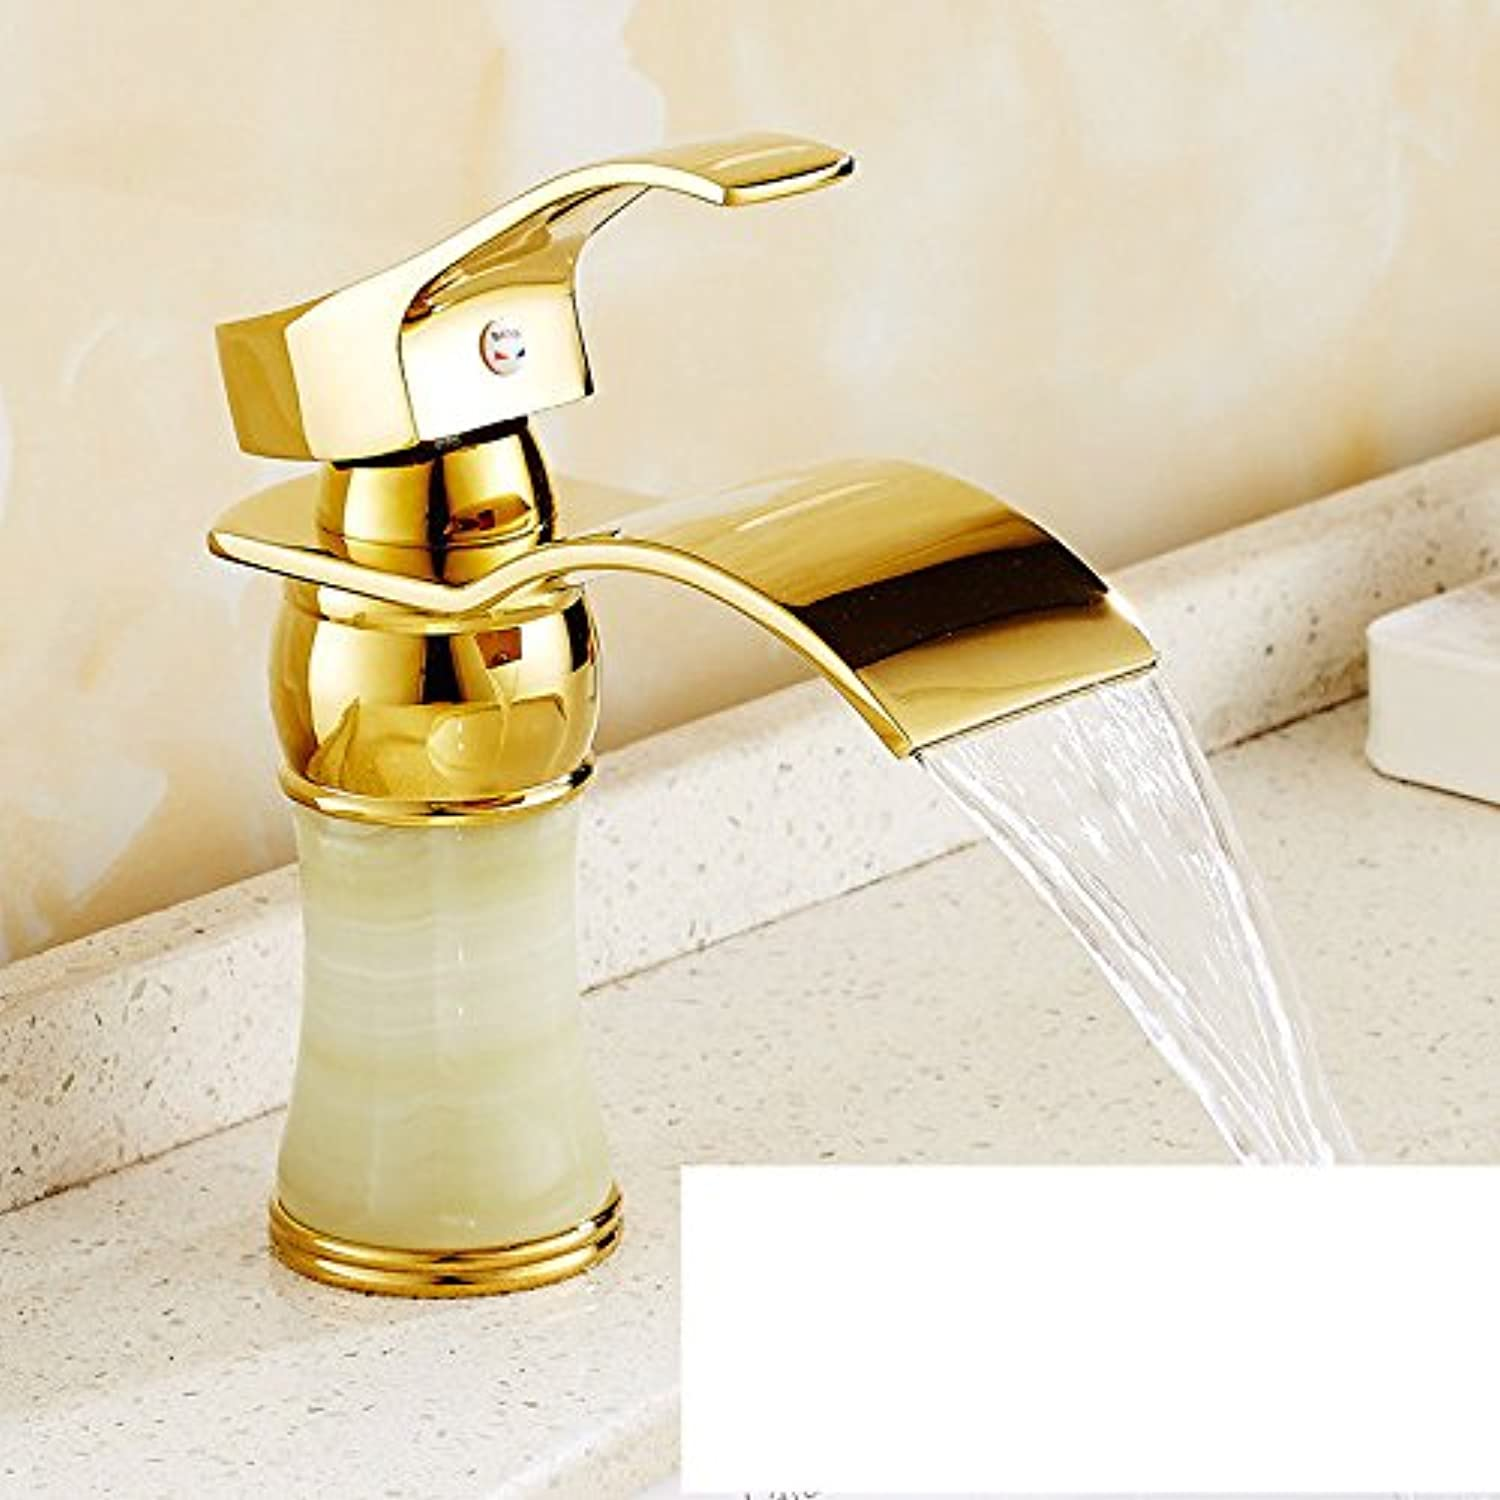 Lalaky Taps Faucet Kitchen Mixer Sink Waterfall Bathroom Mixer Basin Mixer Tap for Kitchen Bathroom and Washroom Copper Hot and Cold Antique Waterfall gold